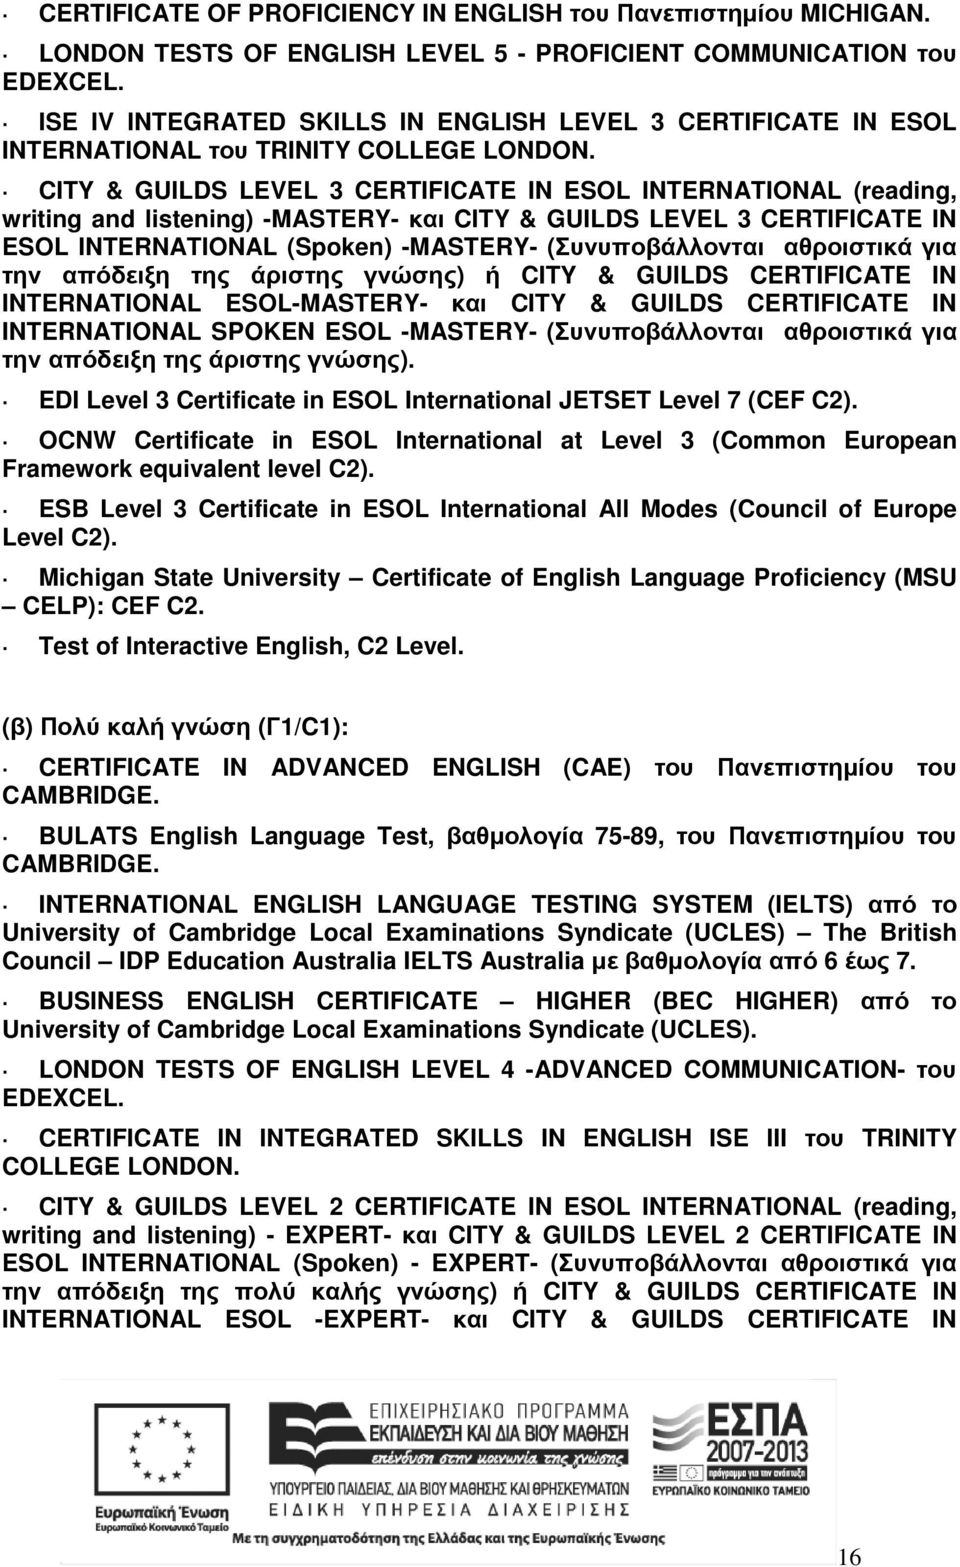 CITY & GUILDS LEVEL 3 CERTIFICATE IN ESOL INTERNATIONAL (reading, writing and listening) -MASTERY- και CITY & GUILDS LEVEL 3 CERTIFICATE IN ESOL INTERNATIONAL (Spoken) -MASTERY- (Συνυποβάλλονται